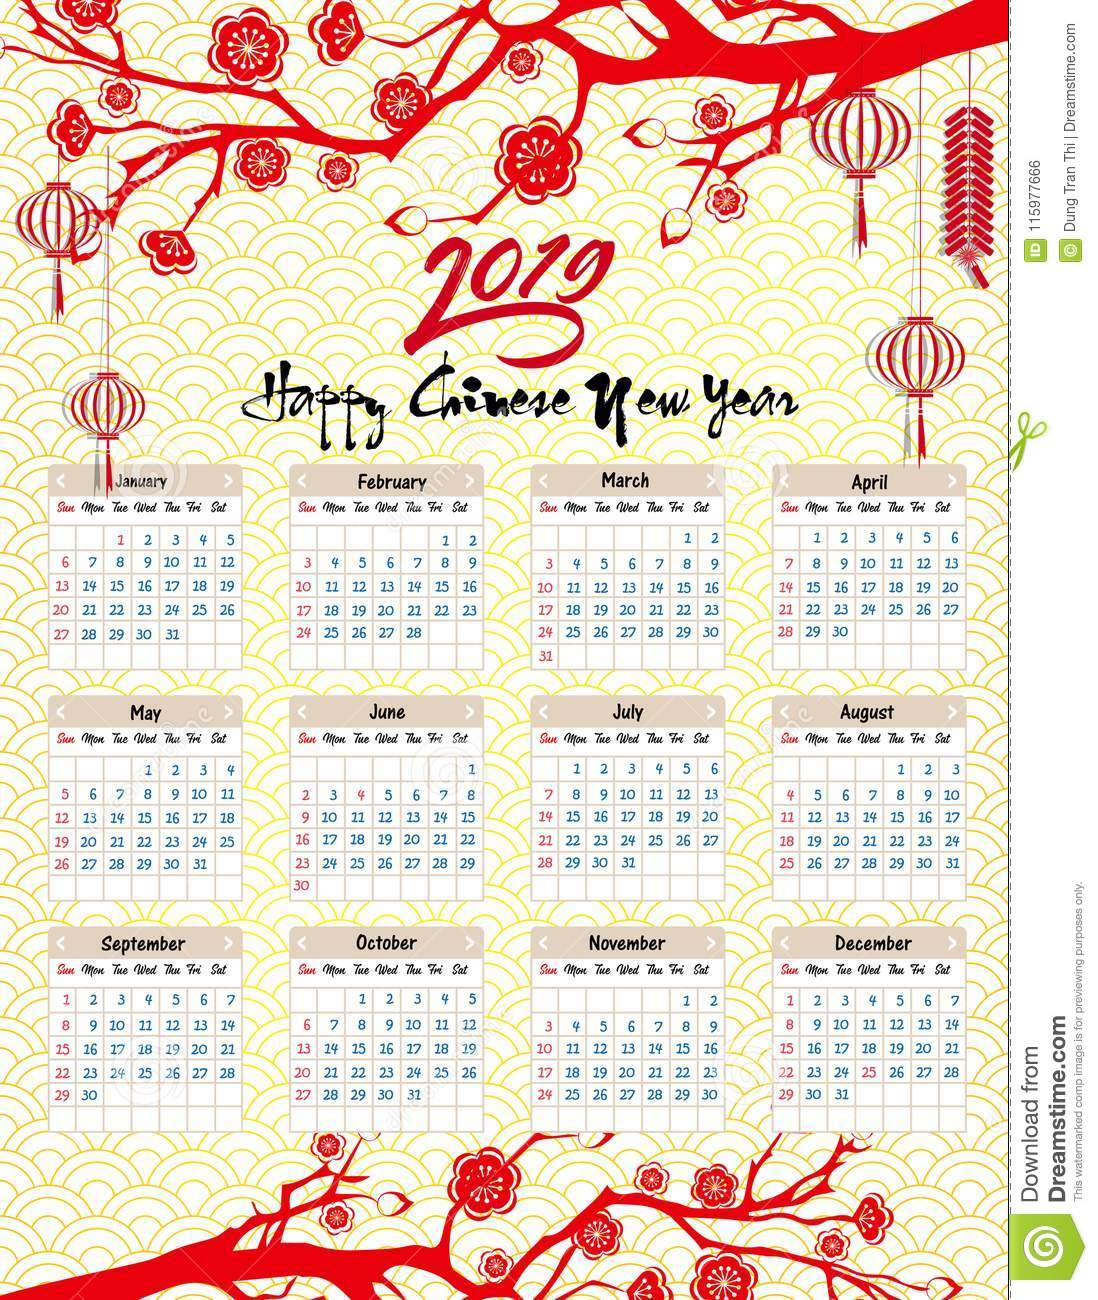 Calendar 2019 Chinese New Year With For Happy Of The